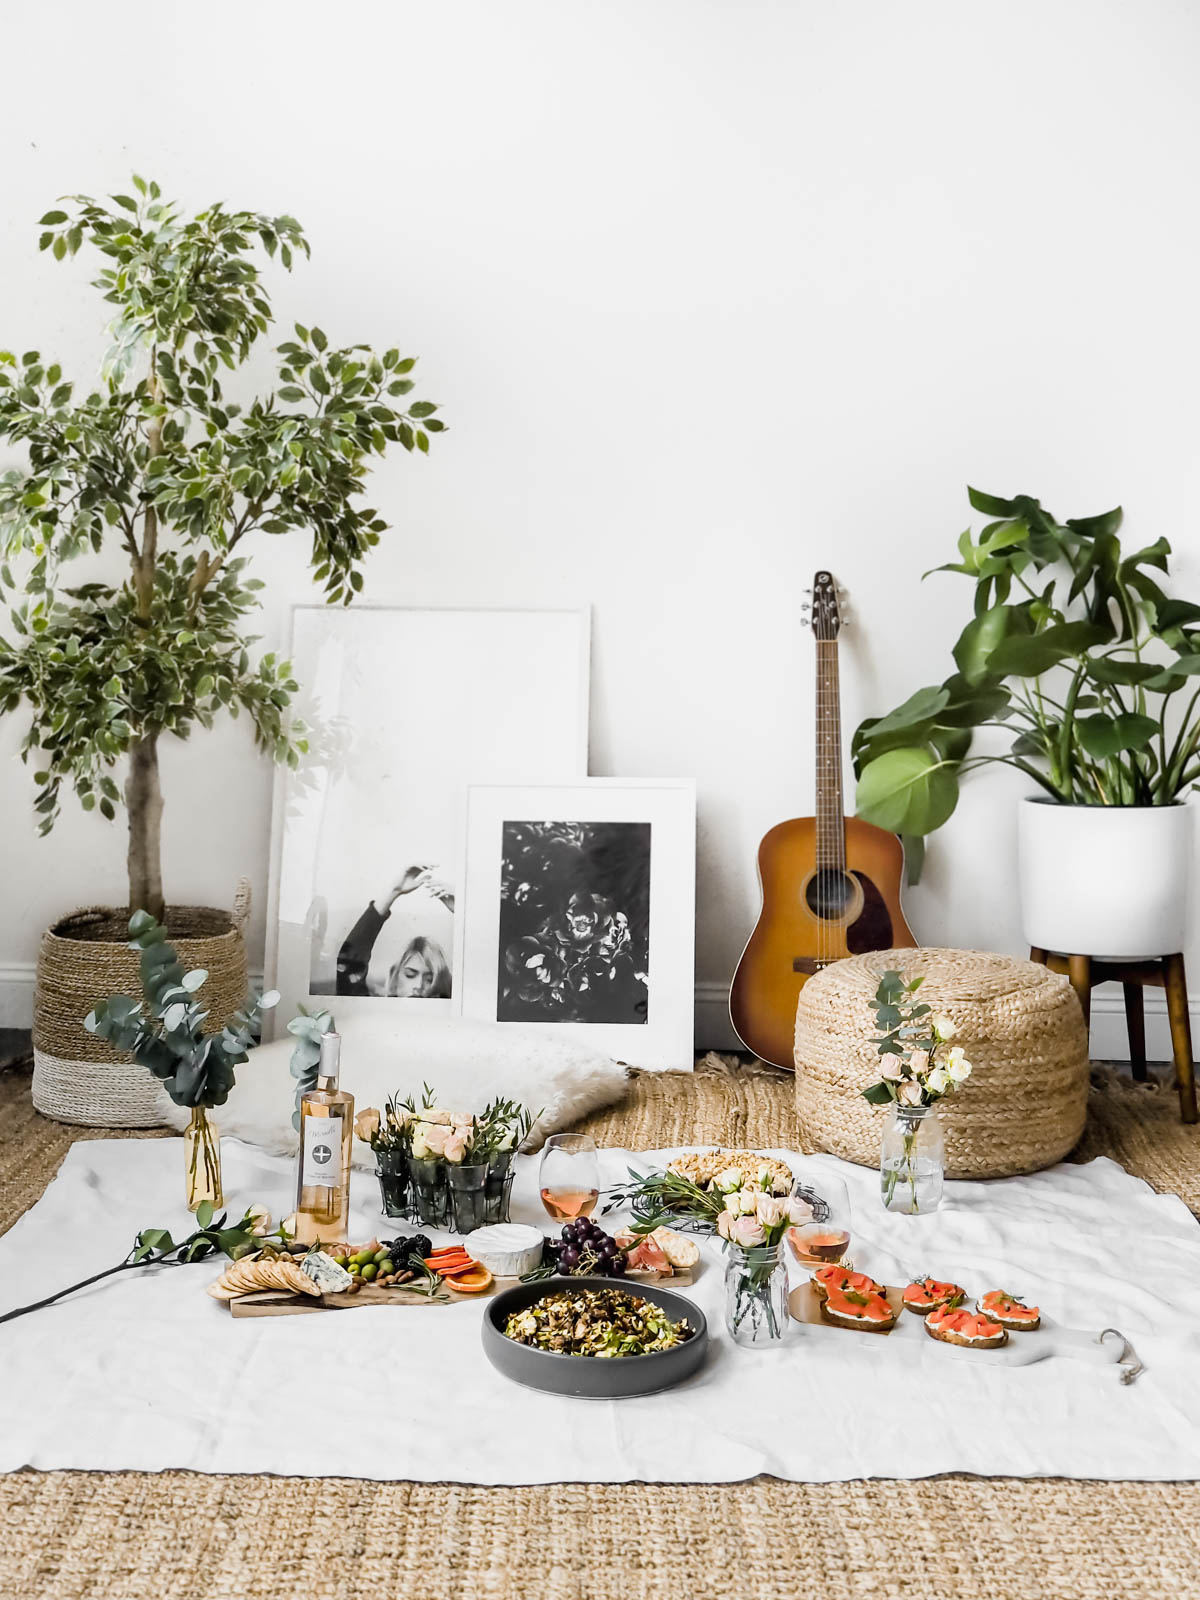 How To Create The Perfect Indoor Picnic Date Night Broma Bakery